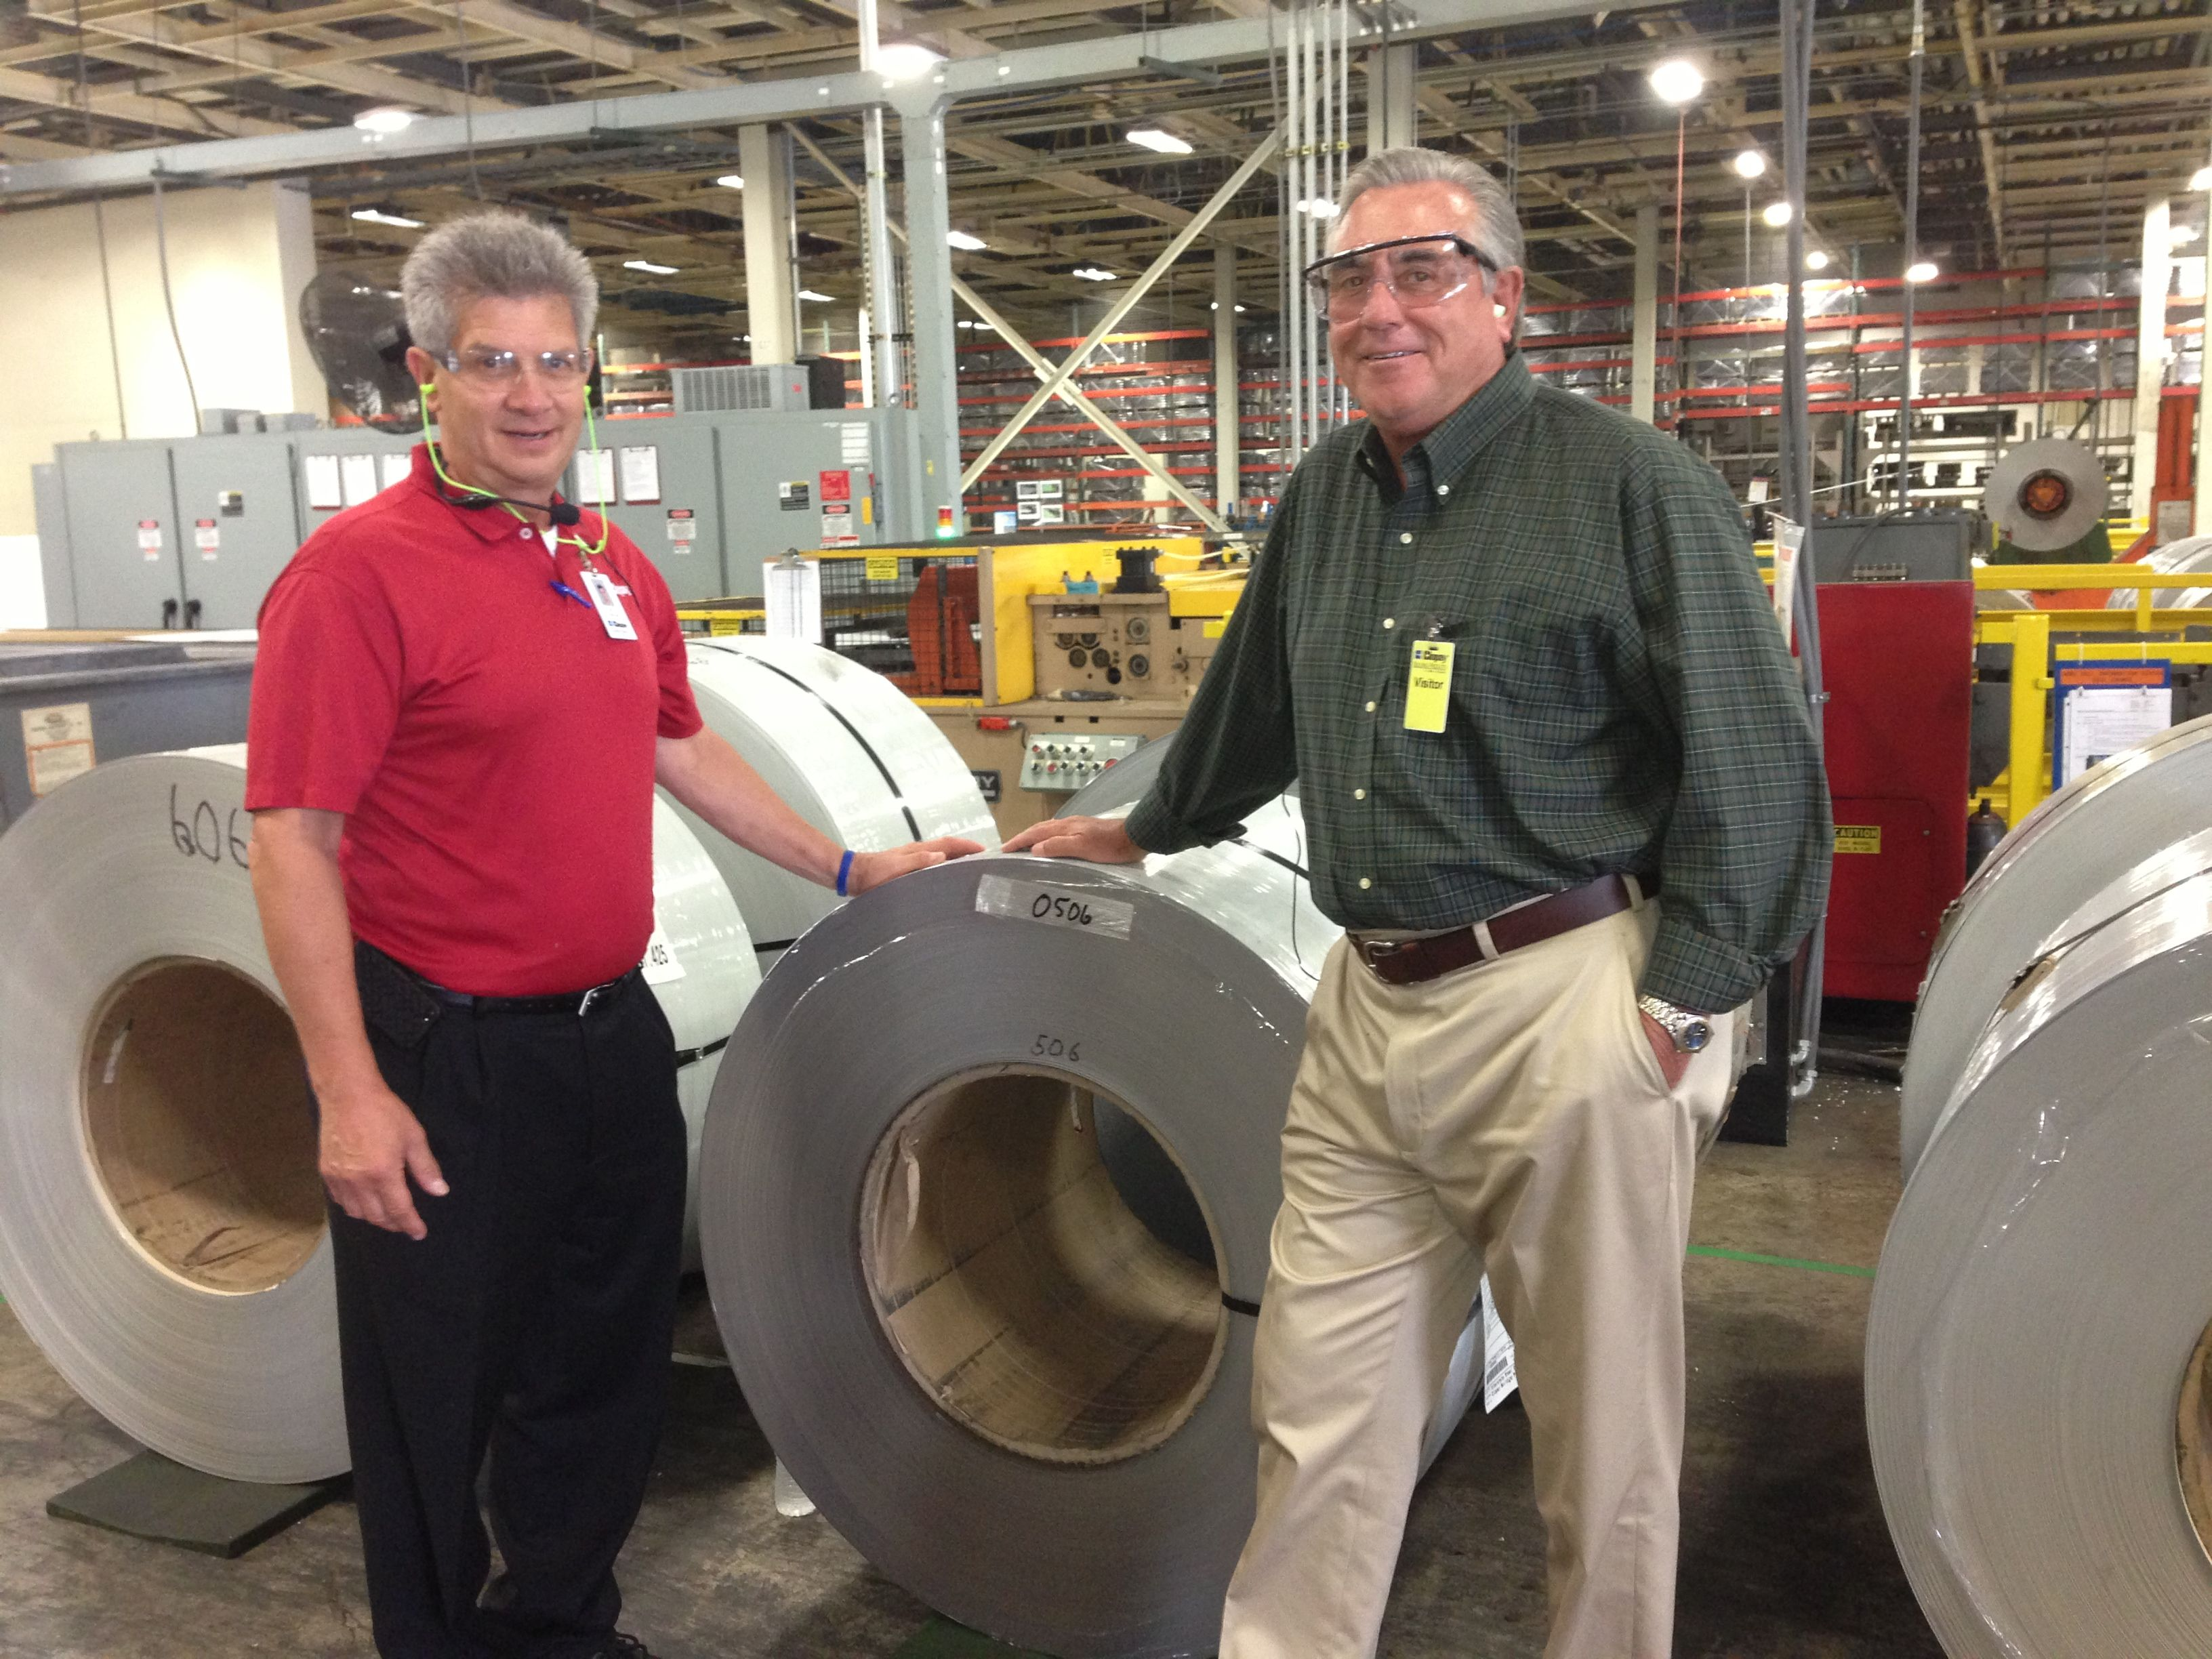 This Roll Of Steel Will Soon Be Transformed Into A Beautiful Clopay Garage  Door   Possibly For Your Home. With Radio Talk Show Host Gary Sullivan At  The ...